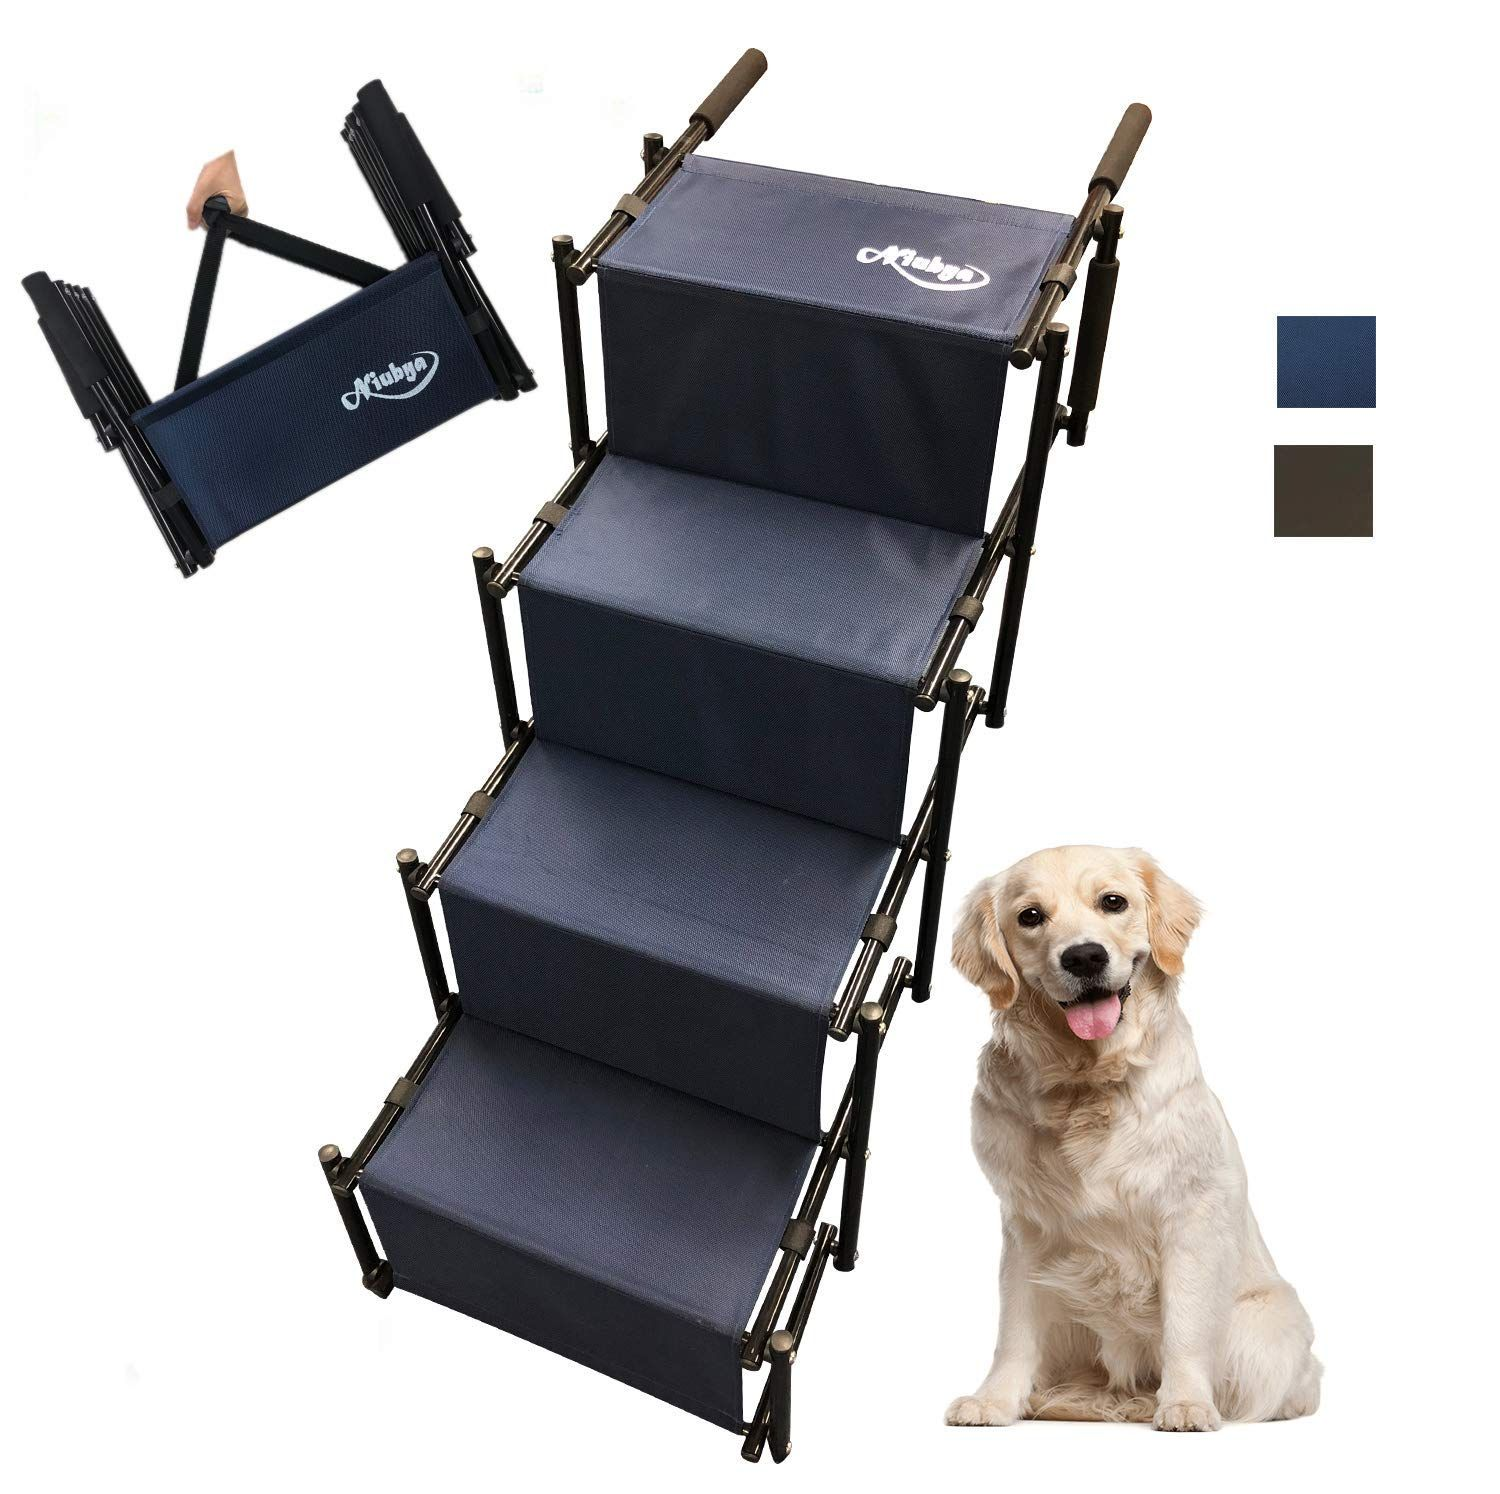 Niubya Folding Car Dog Steps Stairs Review Dog Steps Dog Stairs